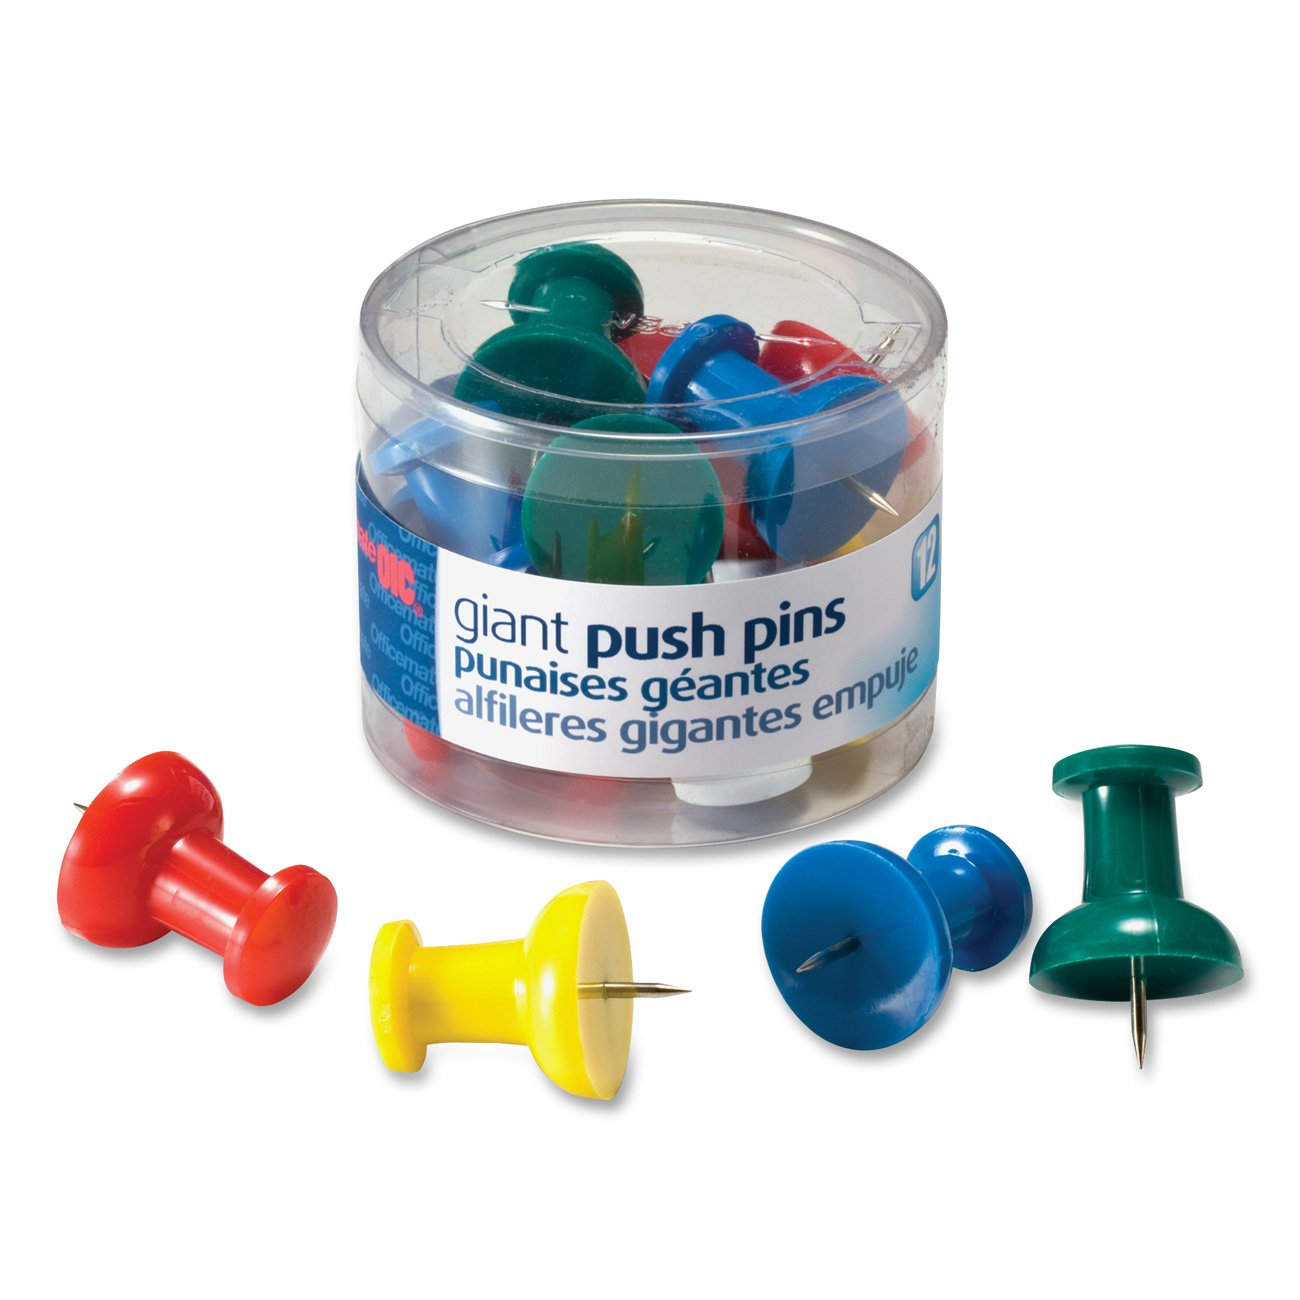 Officemate Giant Push Pins 1.5 Inch, Assorted Colors, Tub of 12 (92902)